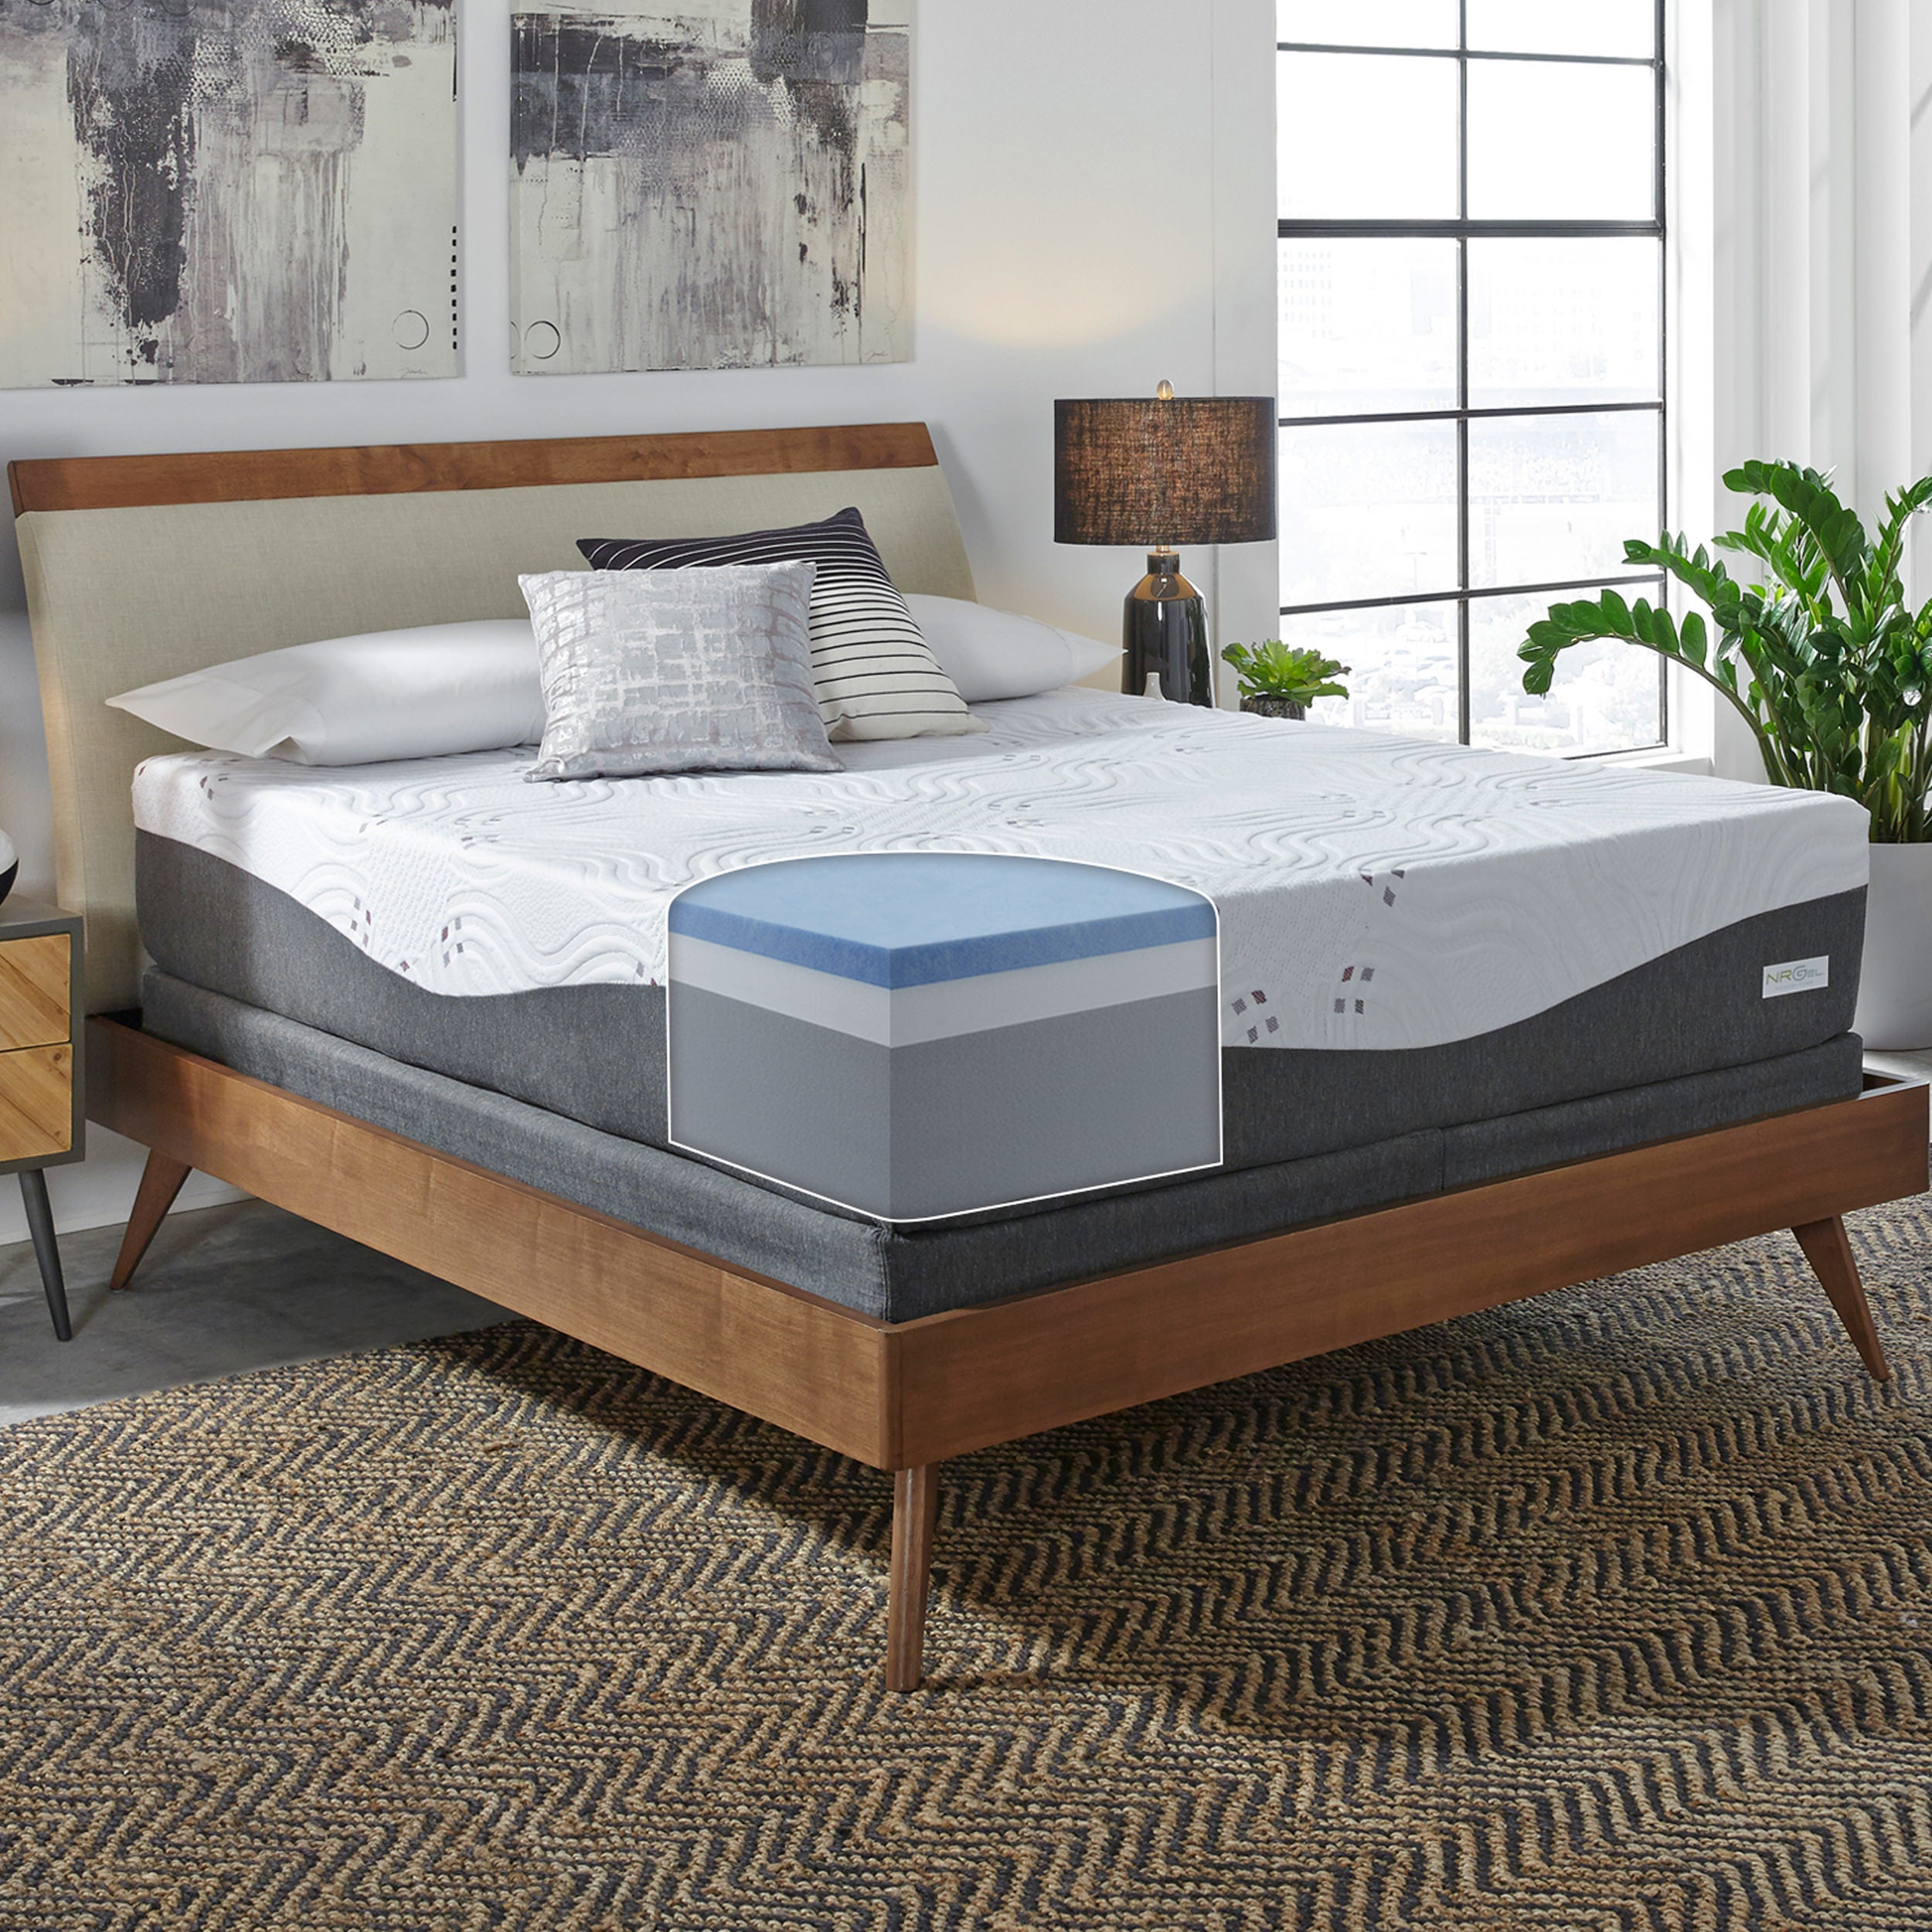 official photos b8d01 f6bc6 ComforPedic Loft from BeautyRest 14-inch NRGel Memory Foam Mattress Set